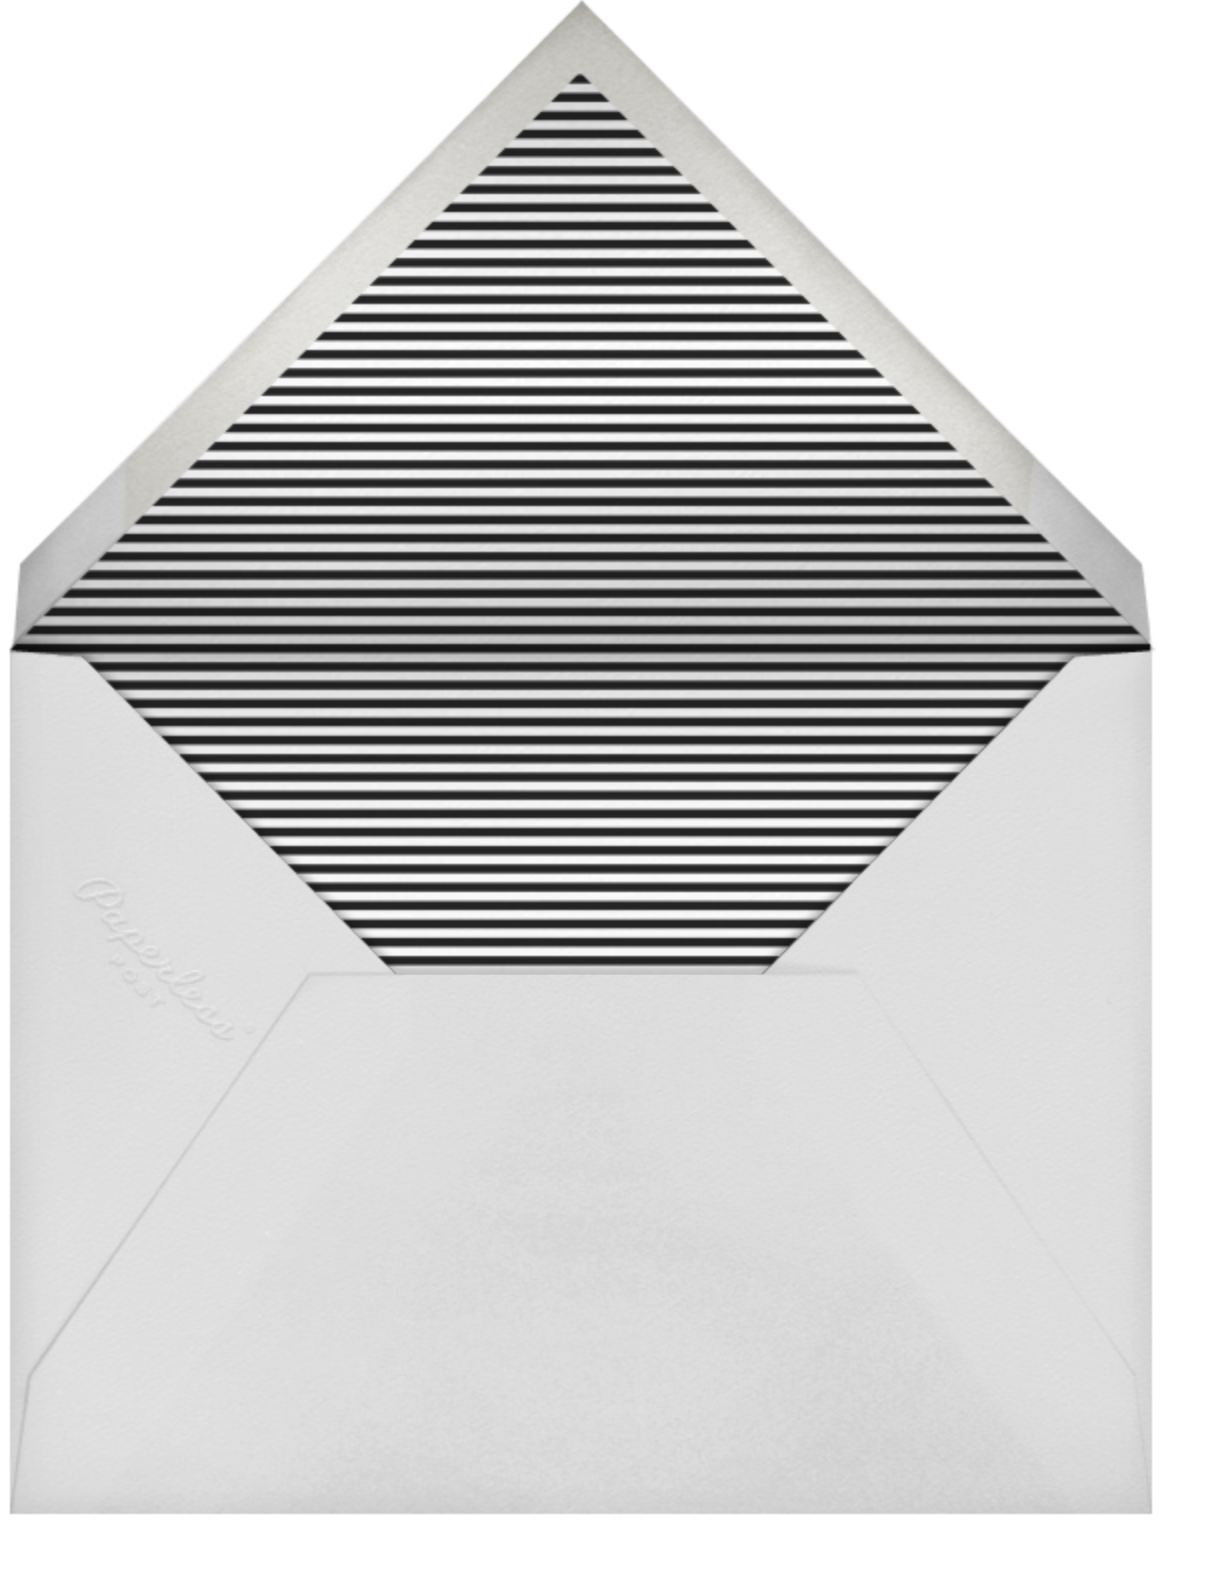 Full-Page Photo (Single-Sided) - Tall - Paperless Post - Envelope